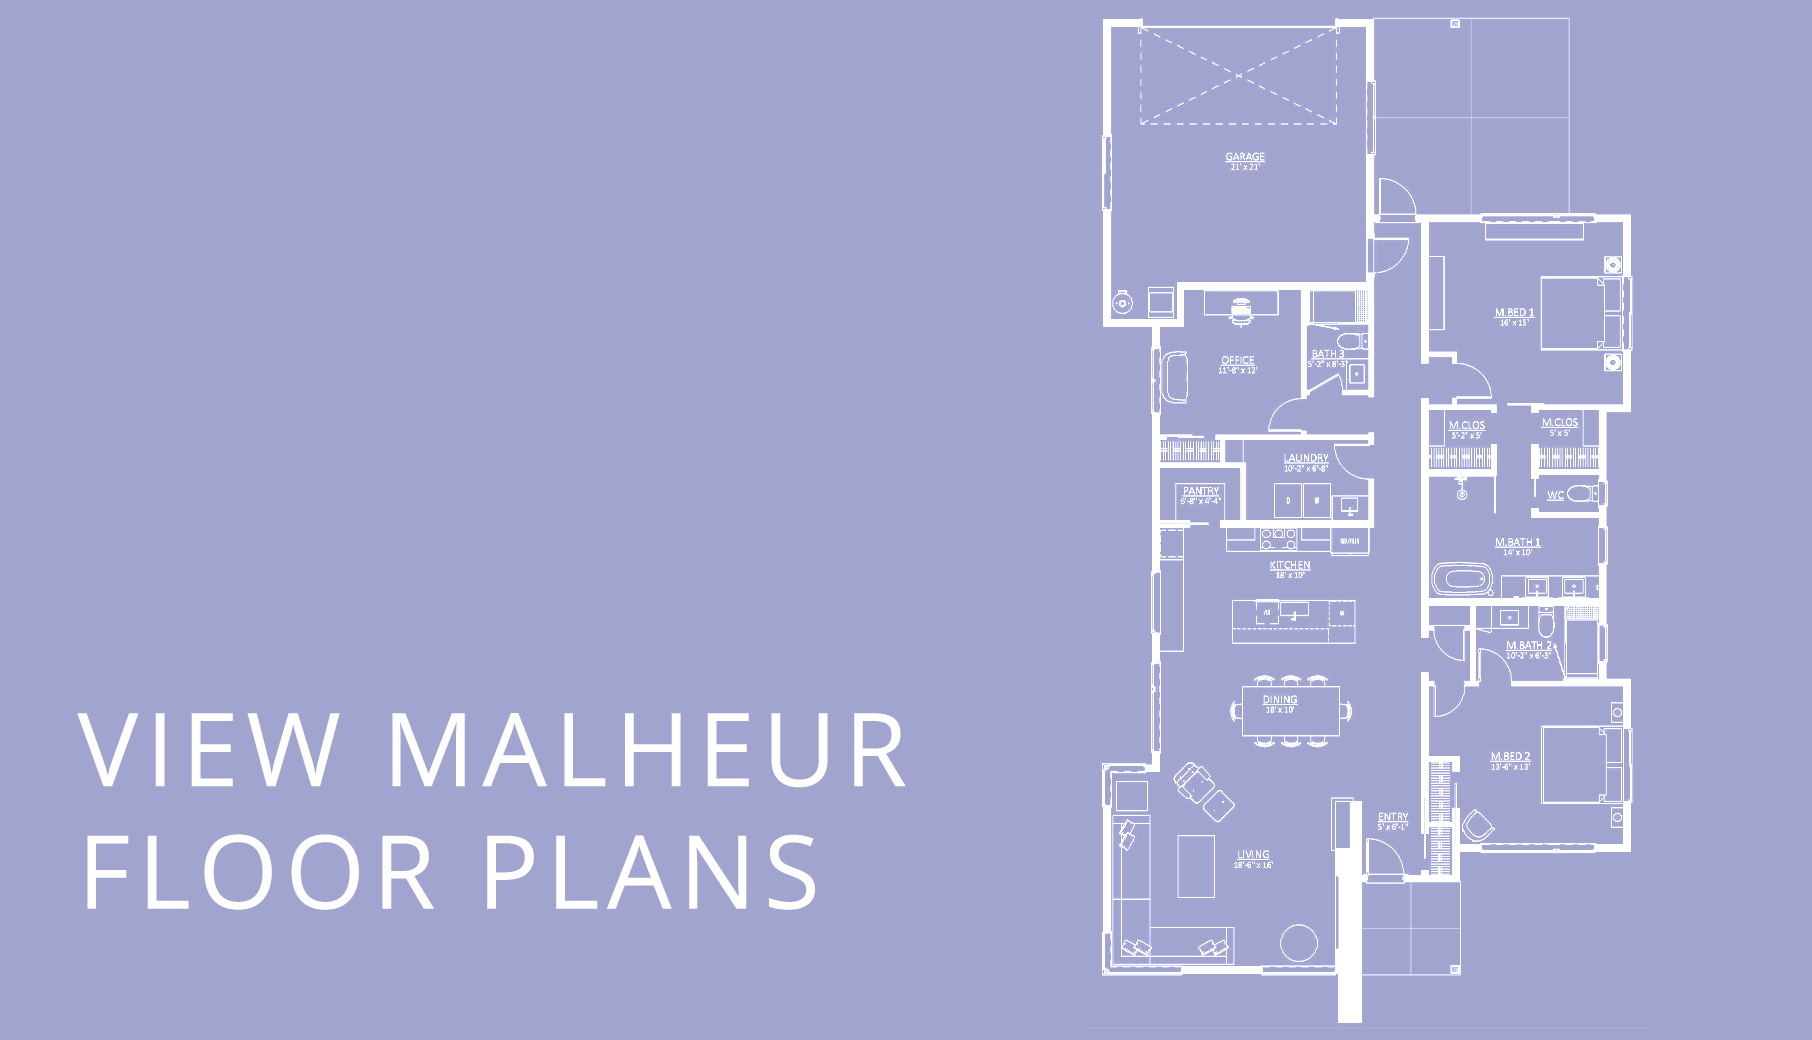 malheur floor plans